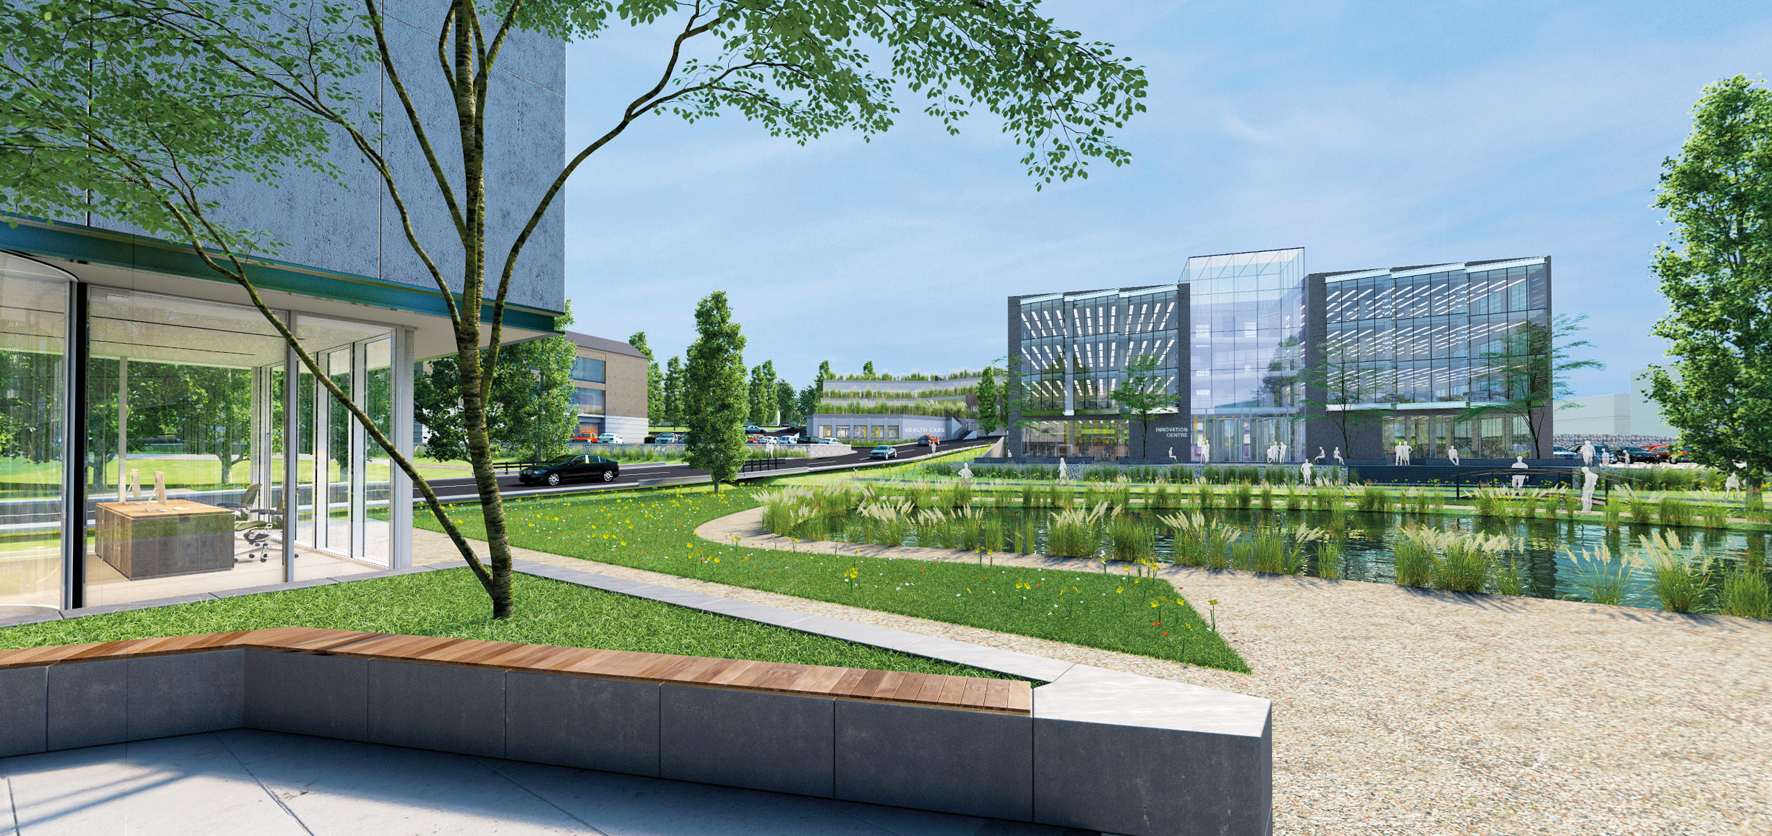 Kent Medical Campus - CGI